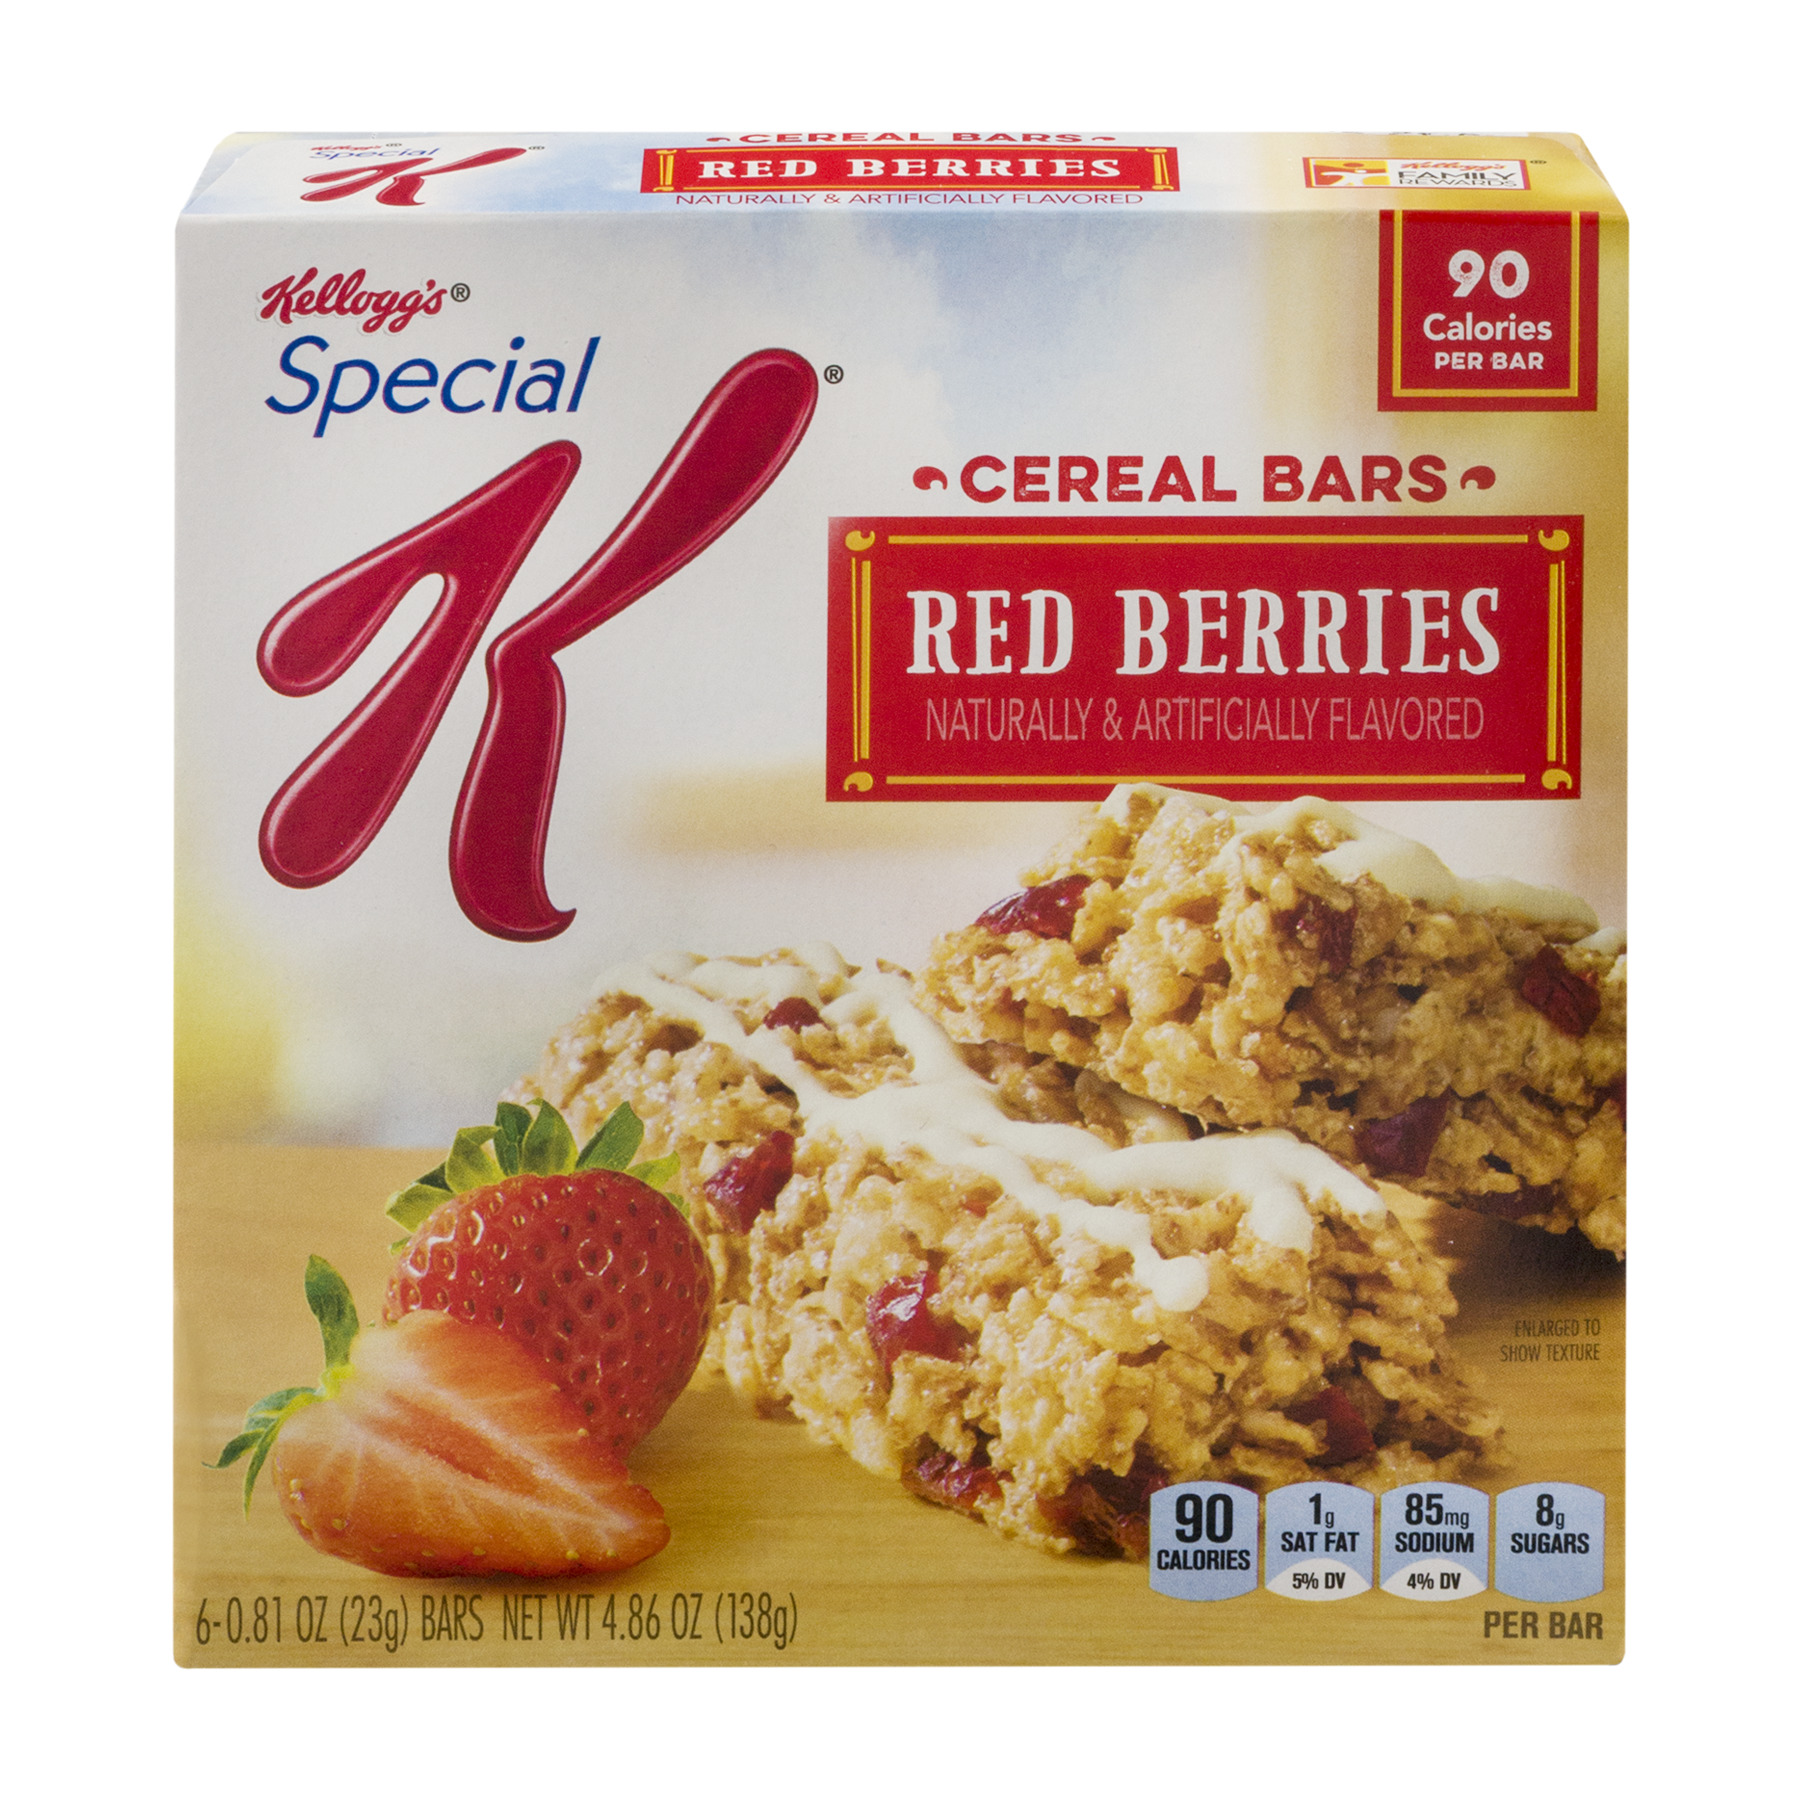 Kellogg's Special K Red Berries Cereal Bars, 0.81 oz, 6 count